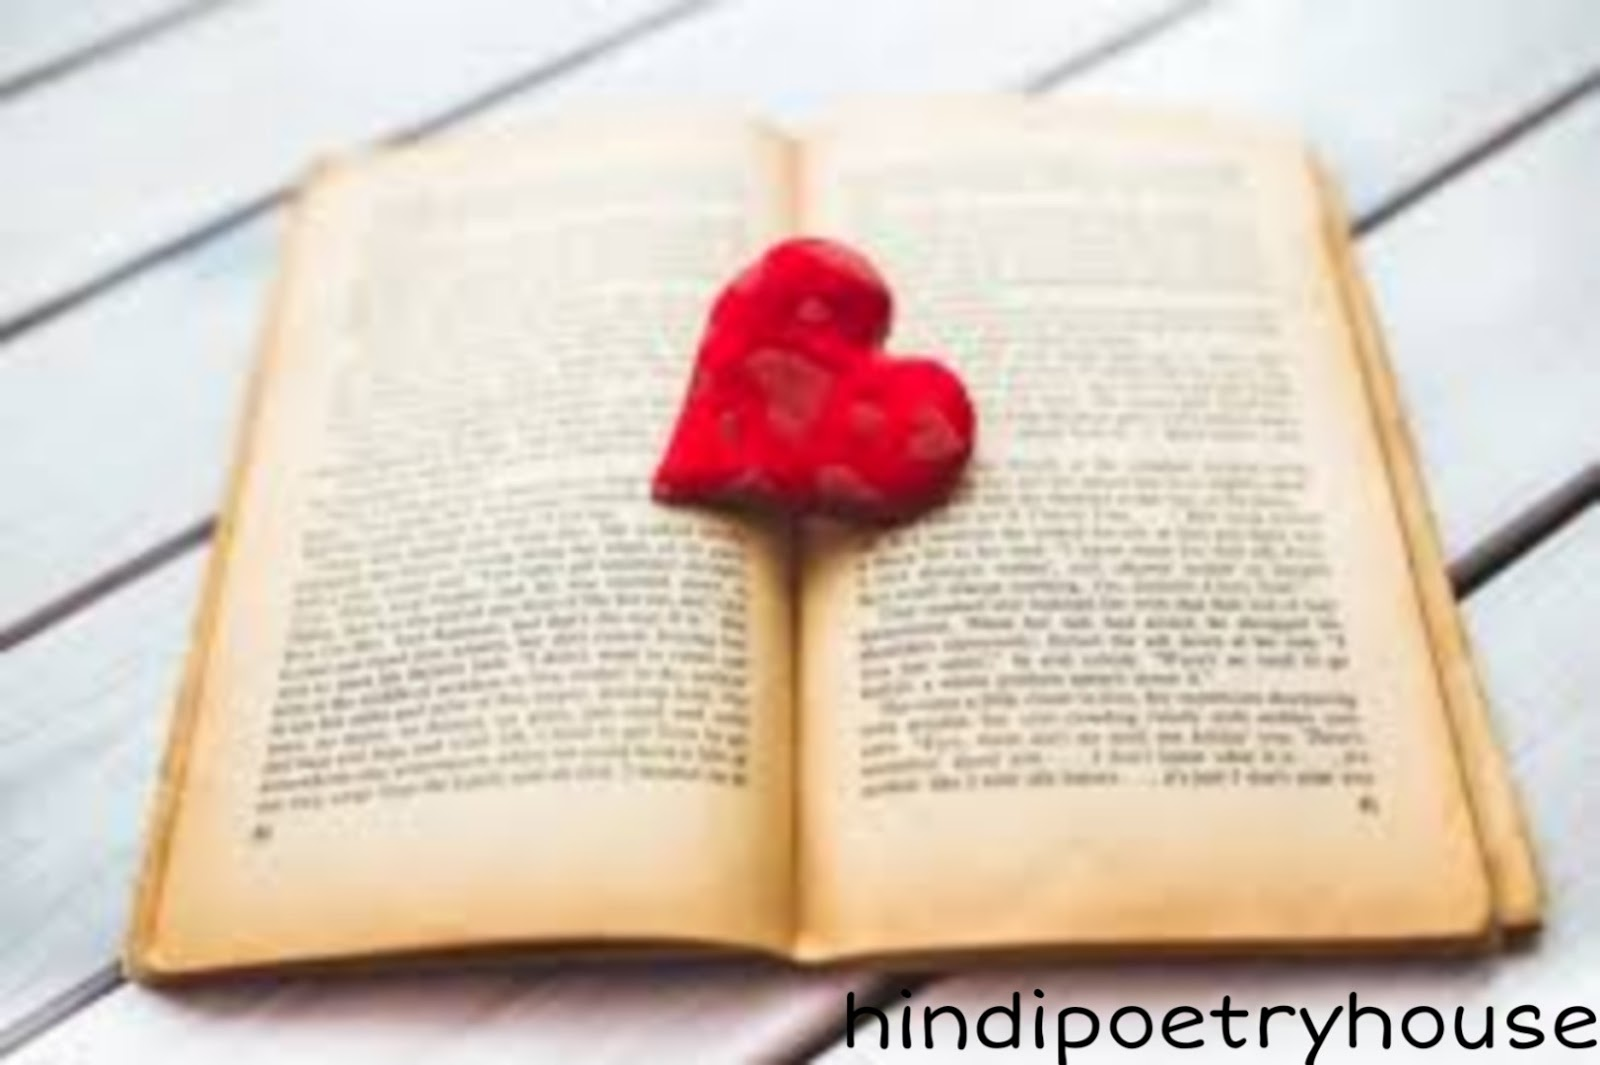 Best poetry on books 2019 for whatsapp,facebook